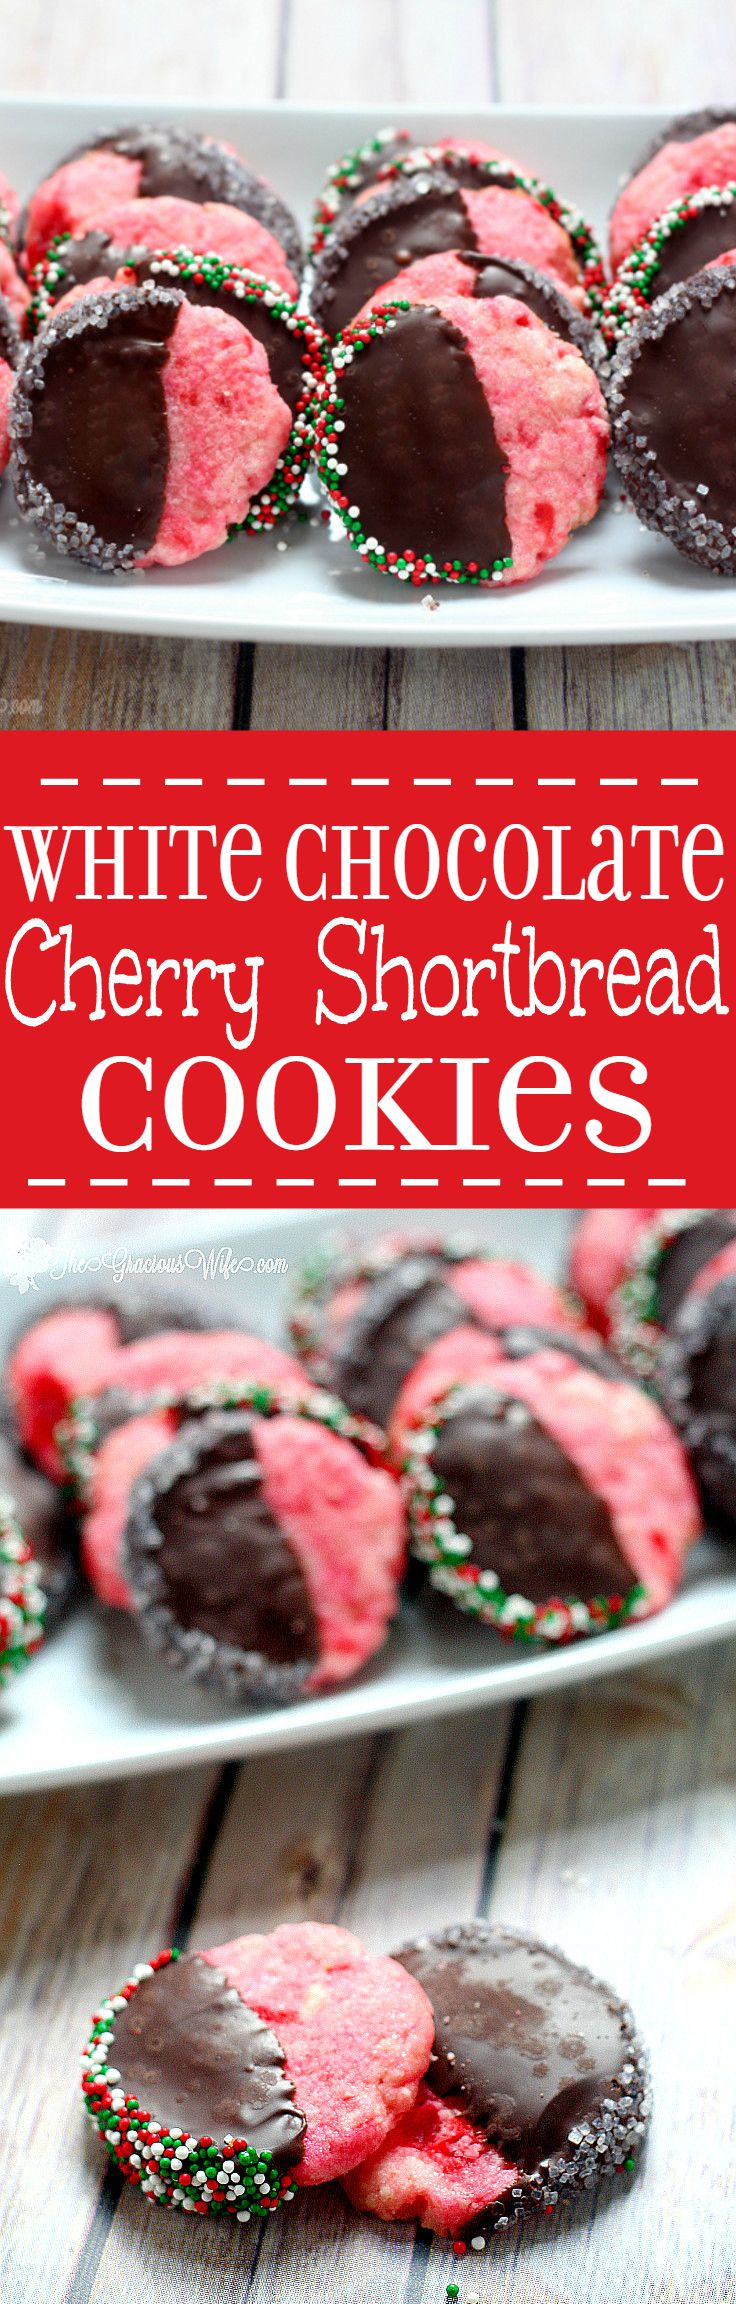 White Chocolate Cherry Shortbread Cookies are a delicious combination of creamy white chocolate and sweet maraschino cherries, dipped in milk or dark chocolate. A perfect and festive Christmas Cookies recipe that's super easy too! Love maraschino cherries!